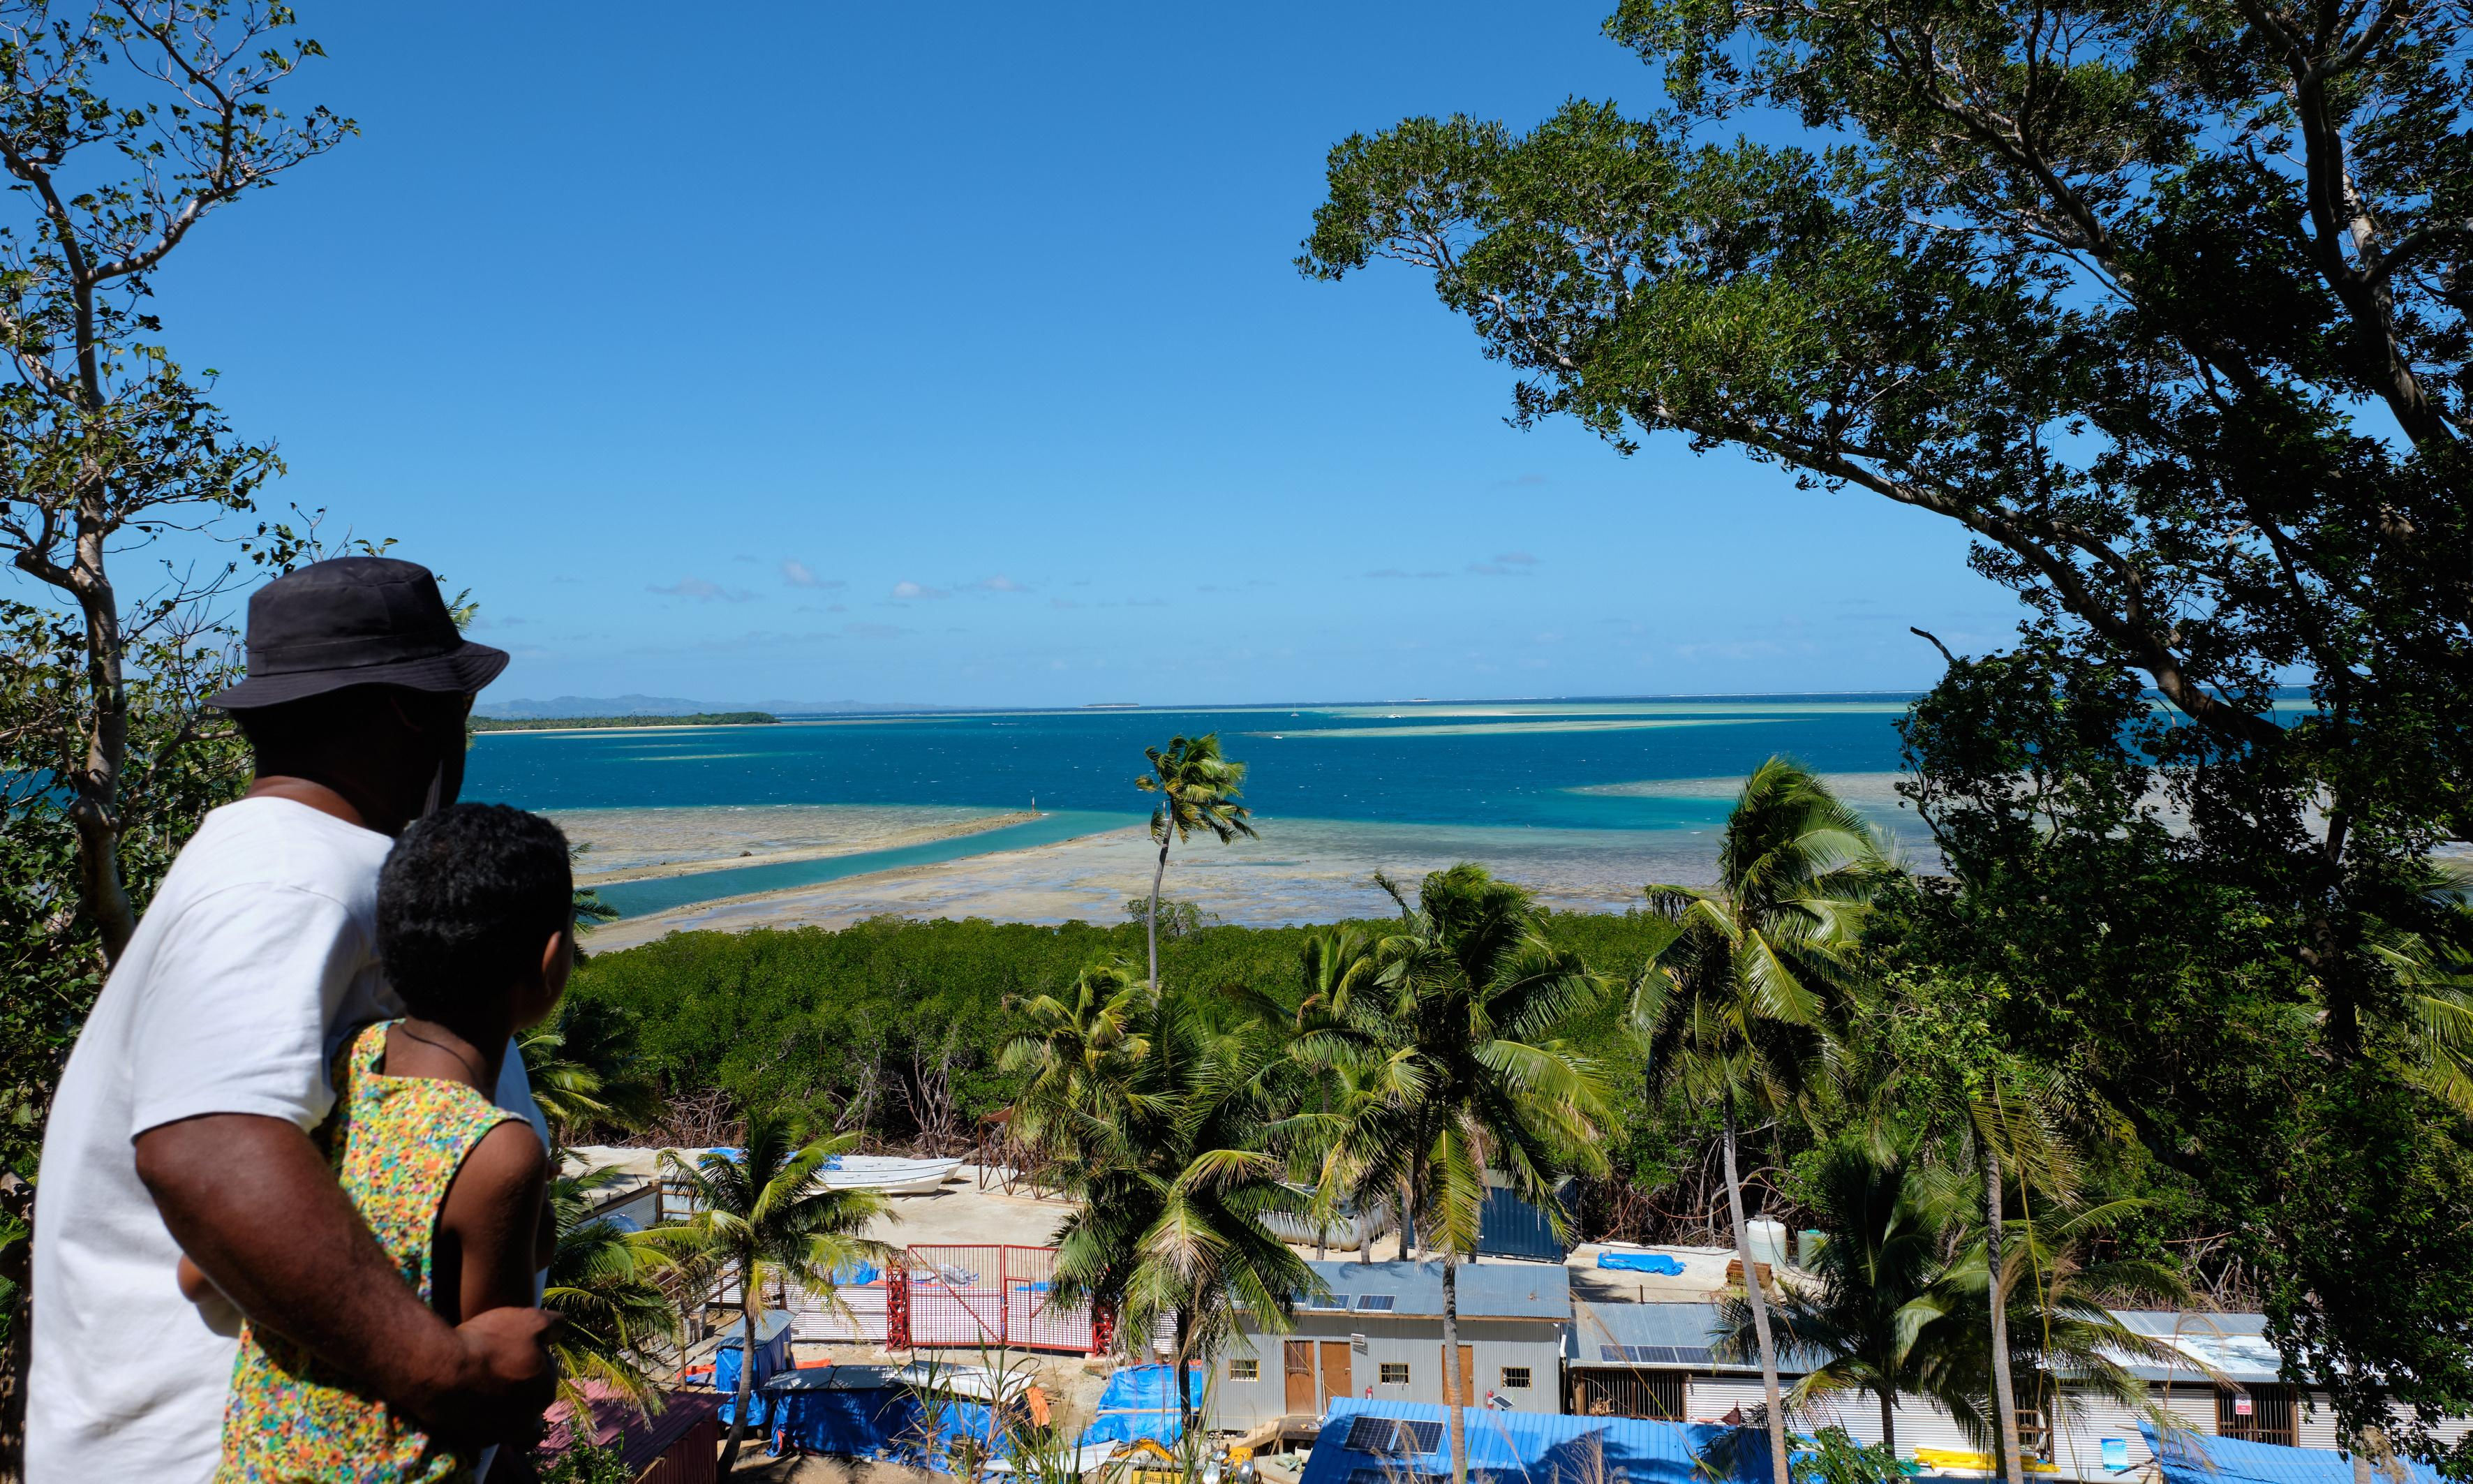 Reef wipeout: surfers fight China-linked mega resort in Fiji